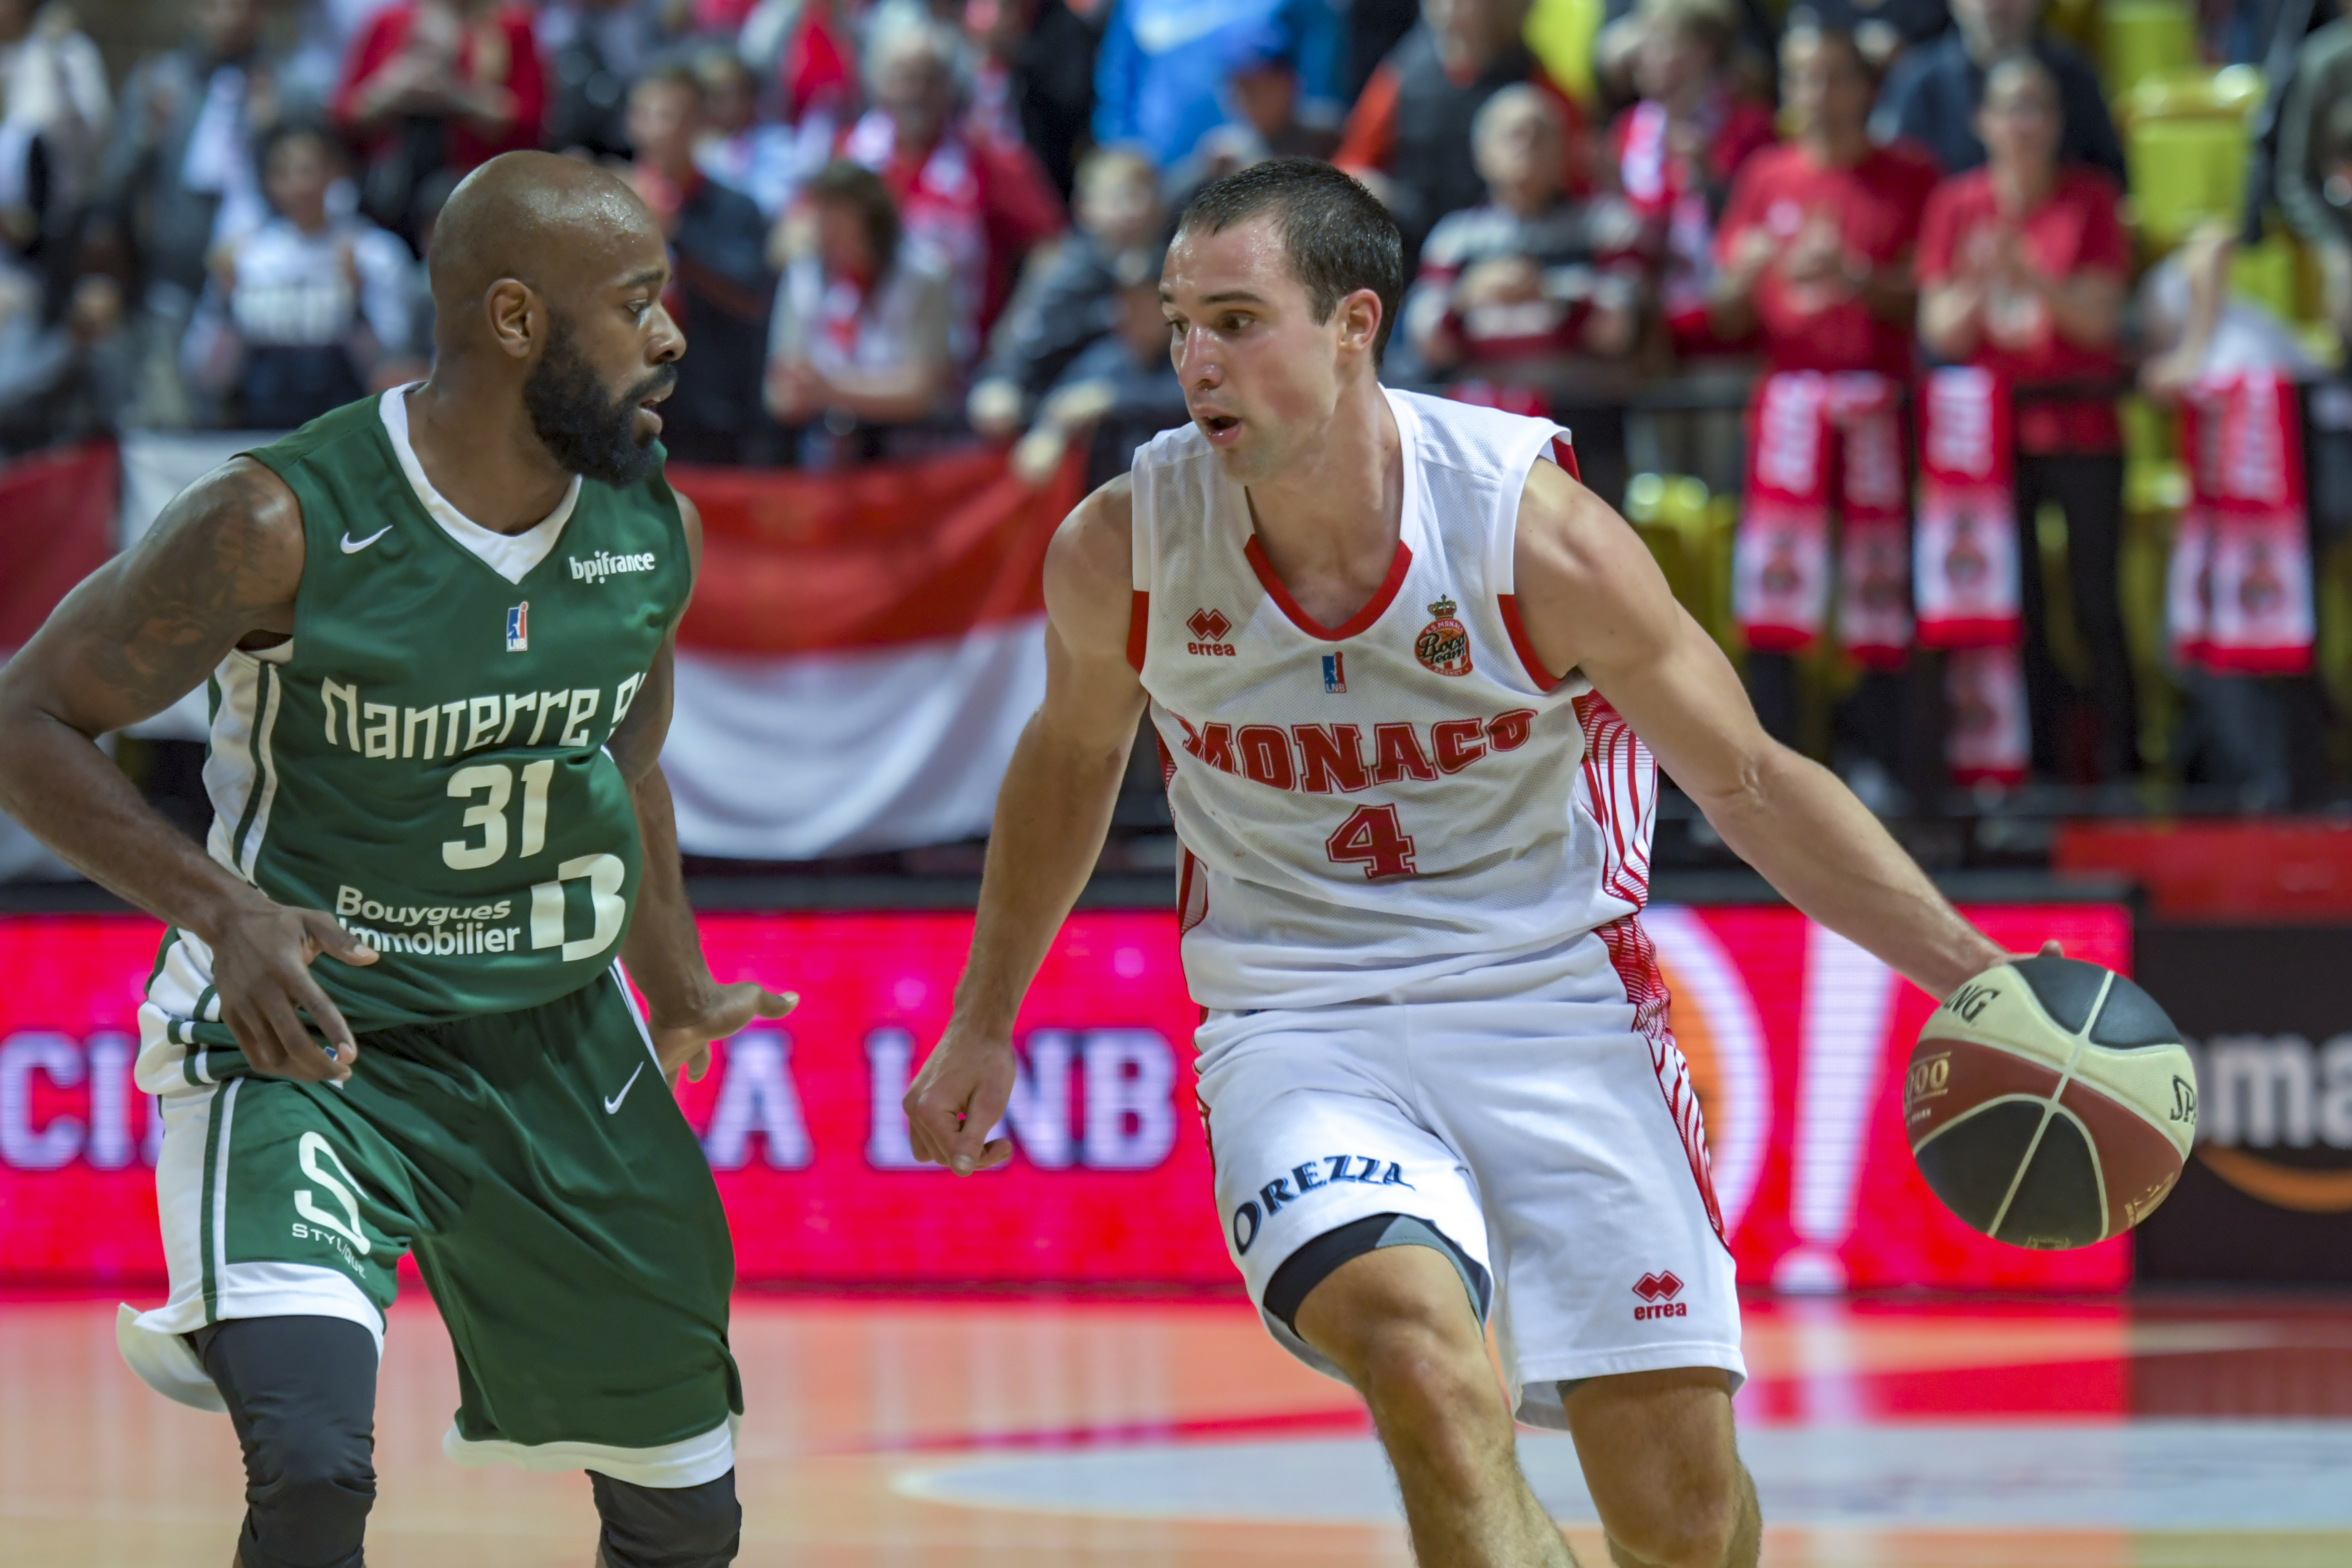 March 21, 2018 - Monaco, France - Aaron Craft (AS Monaco) - Jamar Wilson  (Credit Image: © Panoramic via ZUMA Press)